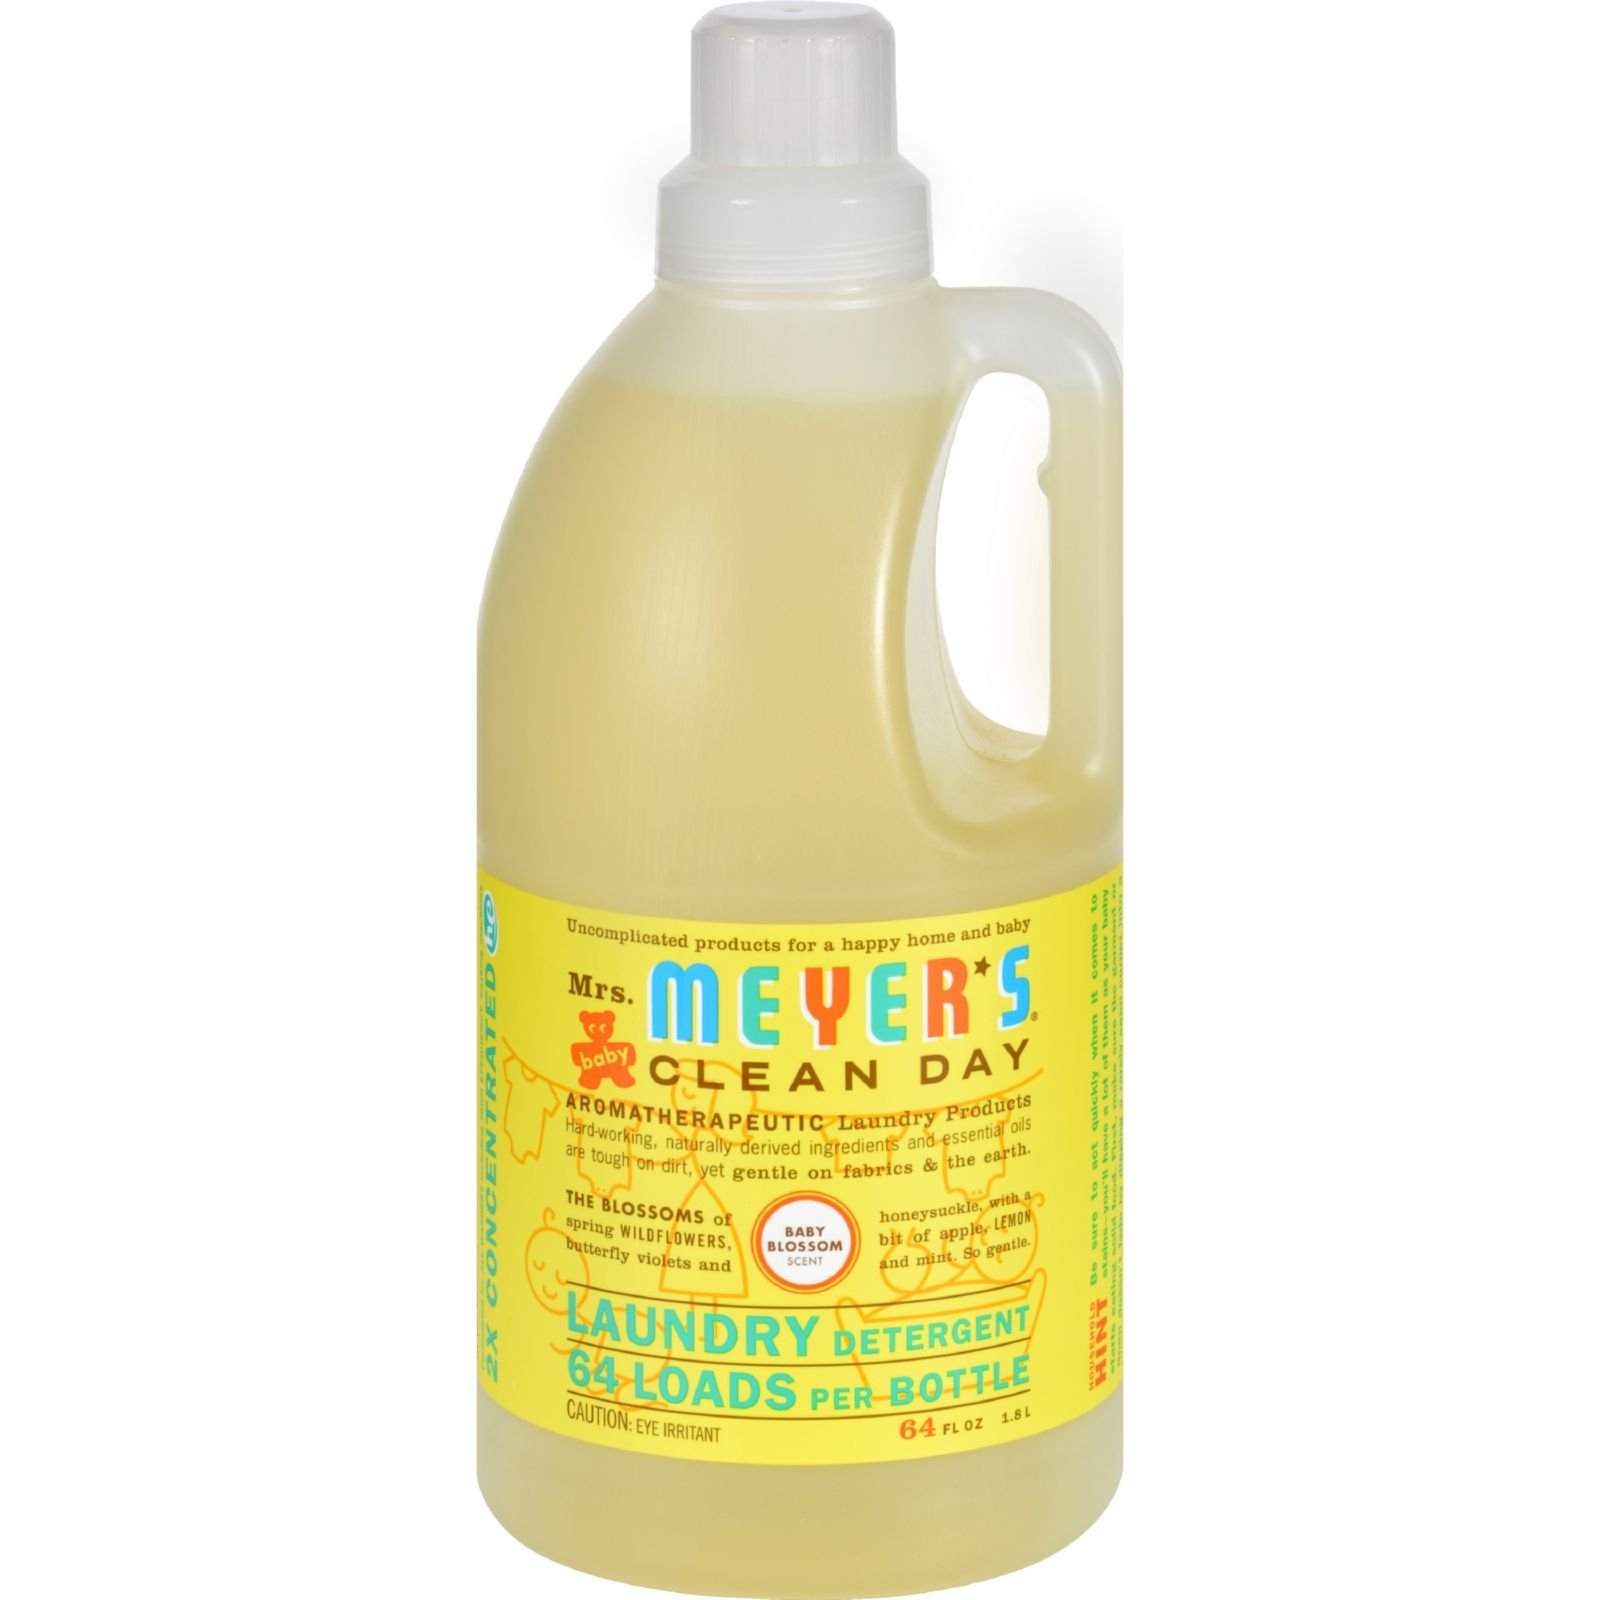 Mrs Meyers Clean Day 2X Baby Blossom Laundry Detergent, 64 Ounce -- 6 per case.